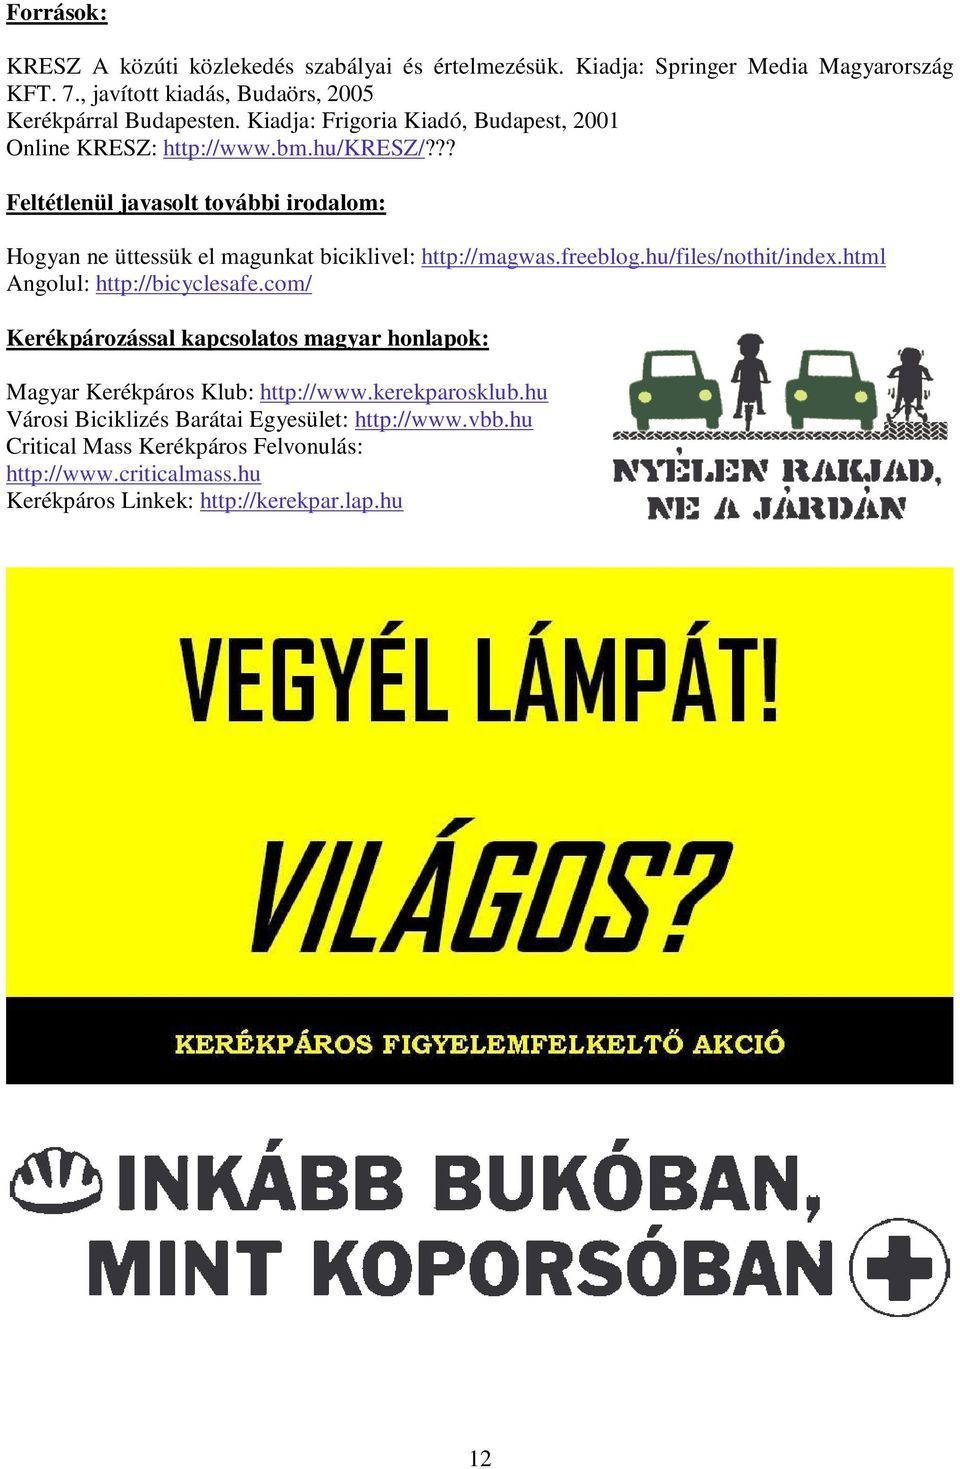 ?? Feltétlenül javasolt további irodalom: Hogyan ne üttessük el magunkat biciklivel: http://magwas.freeblog.hu/files/nothit/index.html Angolul: http://bicyclesafe.